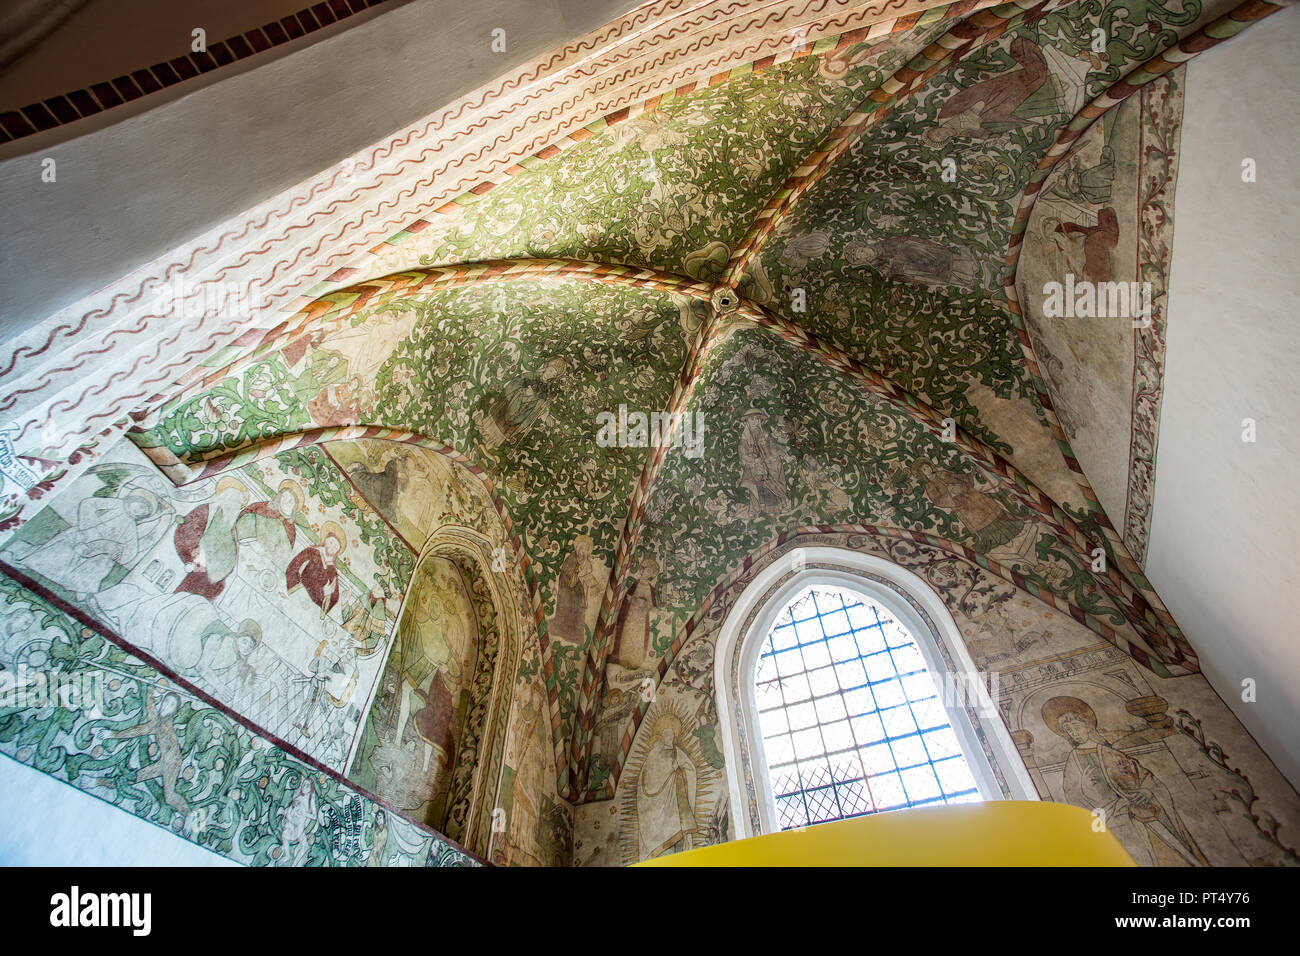 Roskilde, Cathedral, interior, painted ceiling - Stock Image